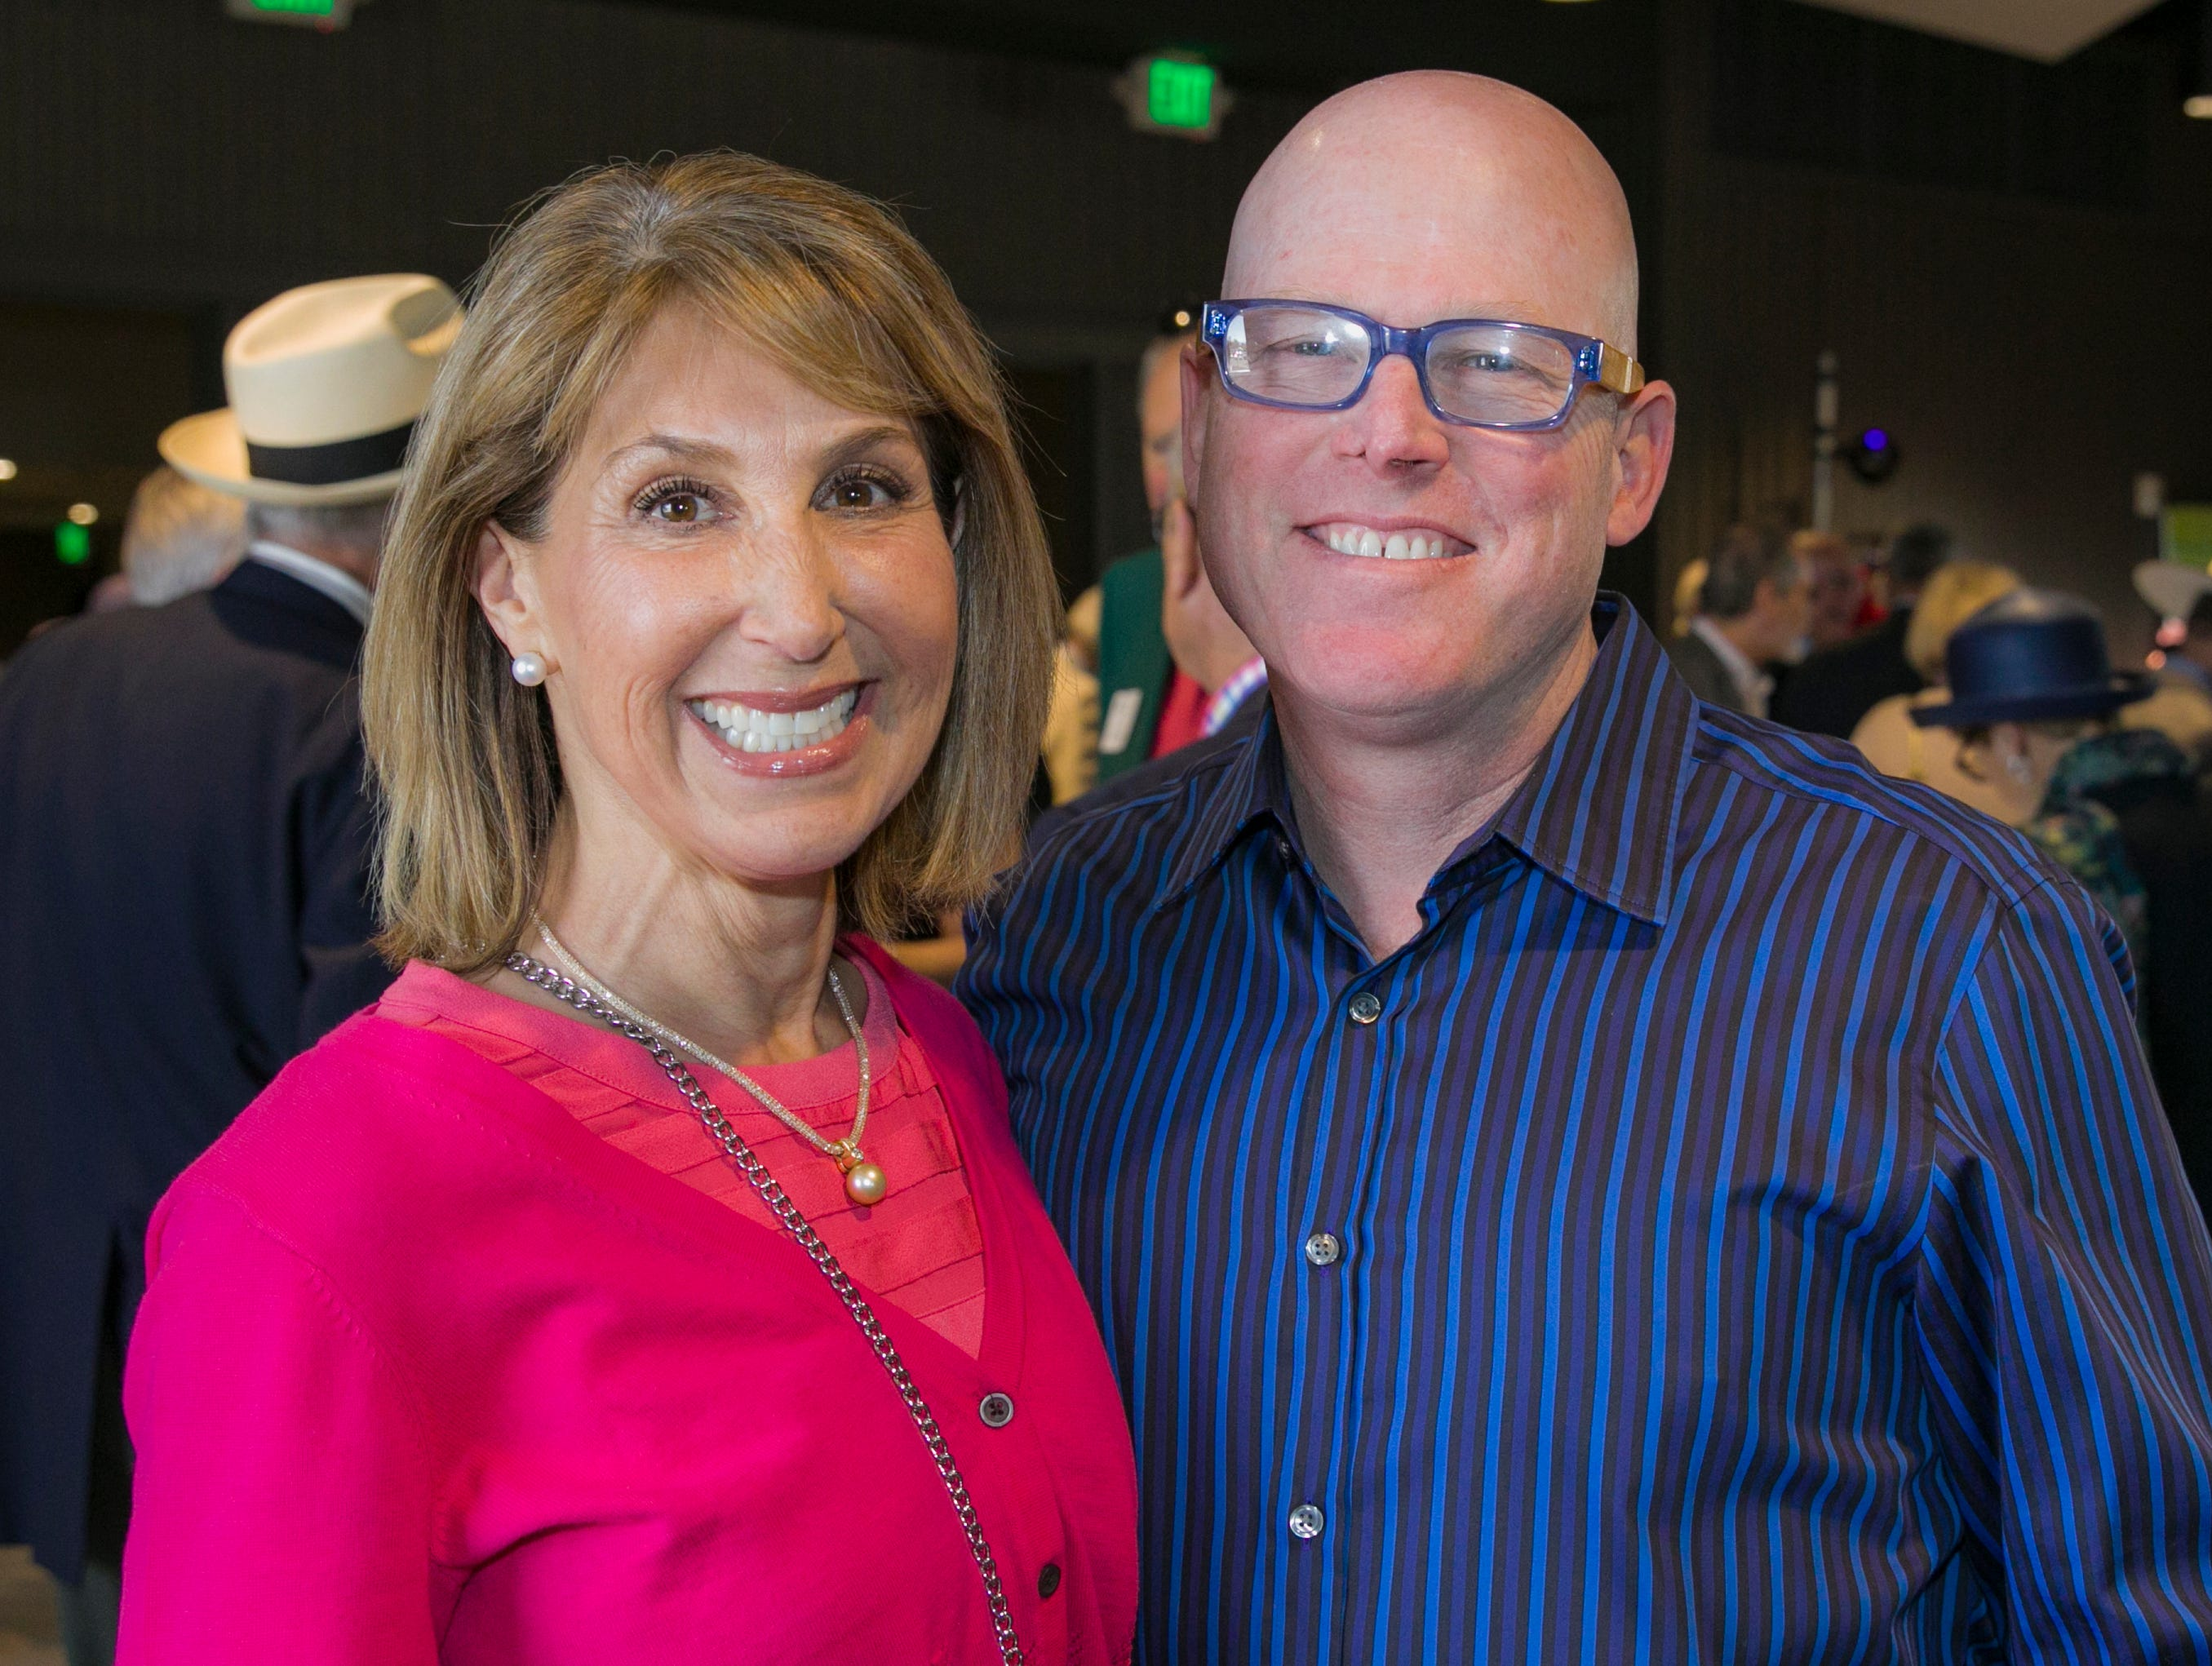 Kelli and Mario Garibotto during the Derby Day fundraiser for the Reno Chamber Orchestra at the Renaissance Reno on Saturday, May 4, 2019.